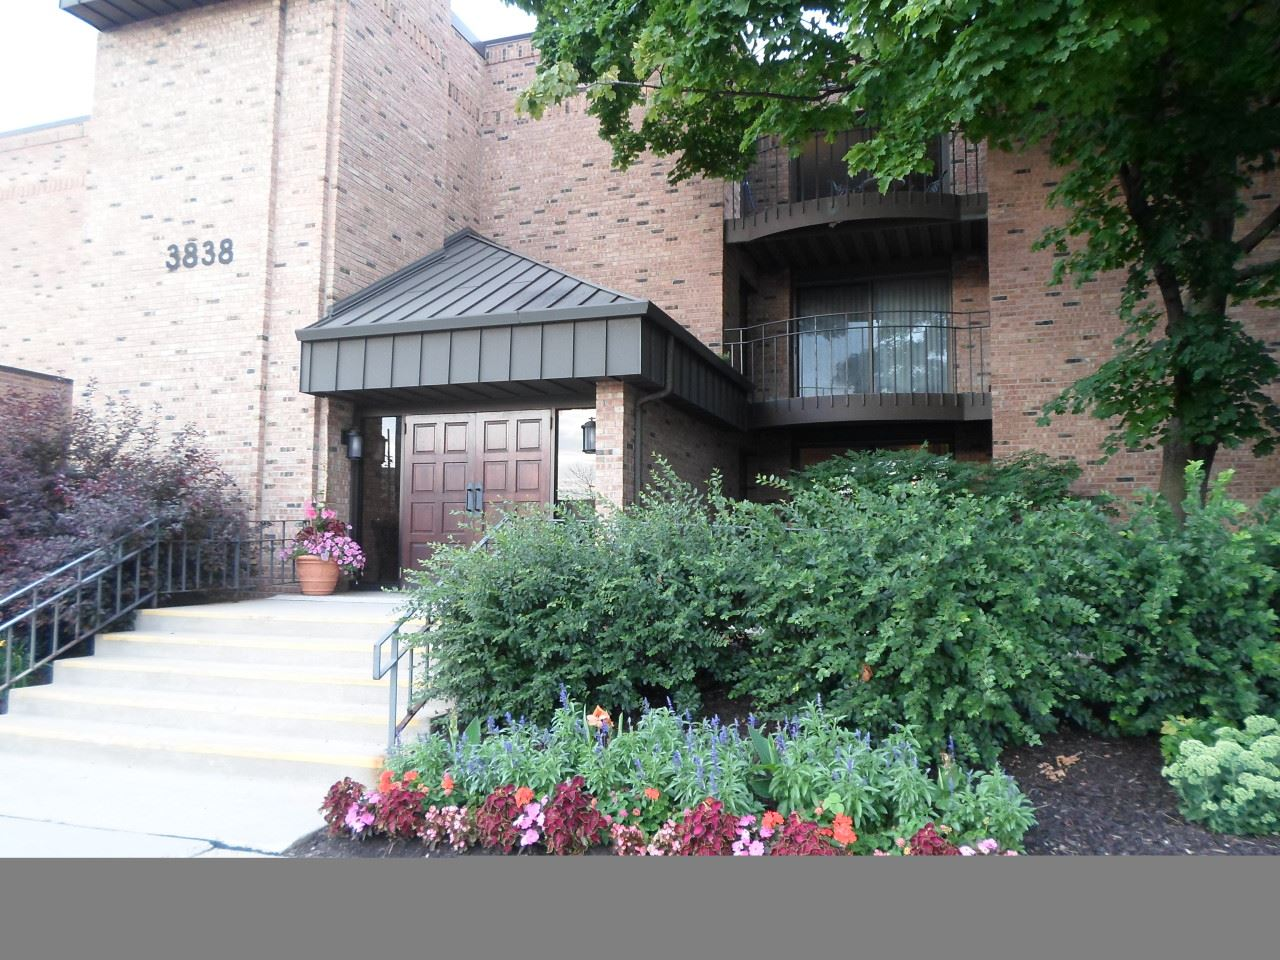 3838 N Oakland Ave #175, Shorewood, WI 53211 - #: 1700385